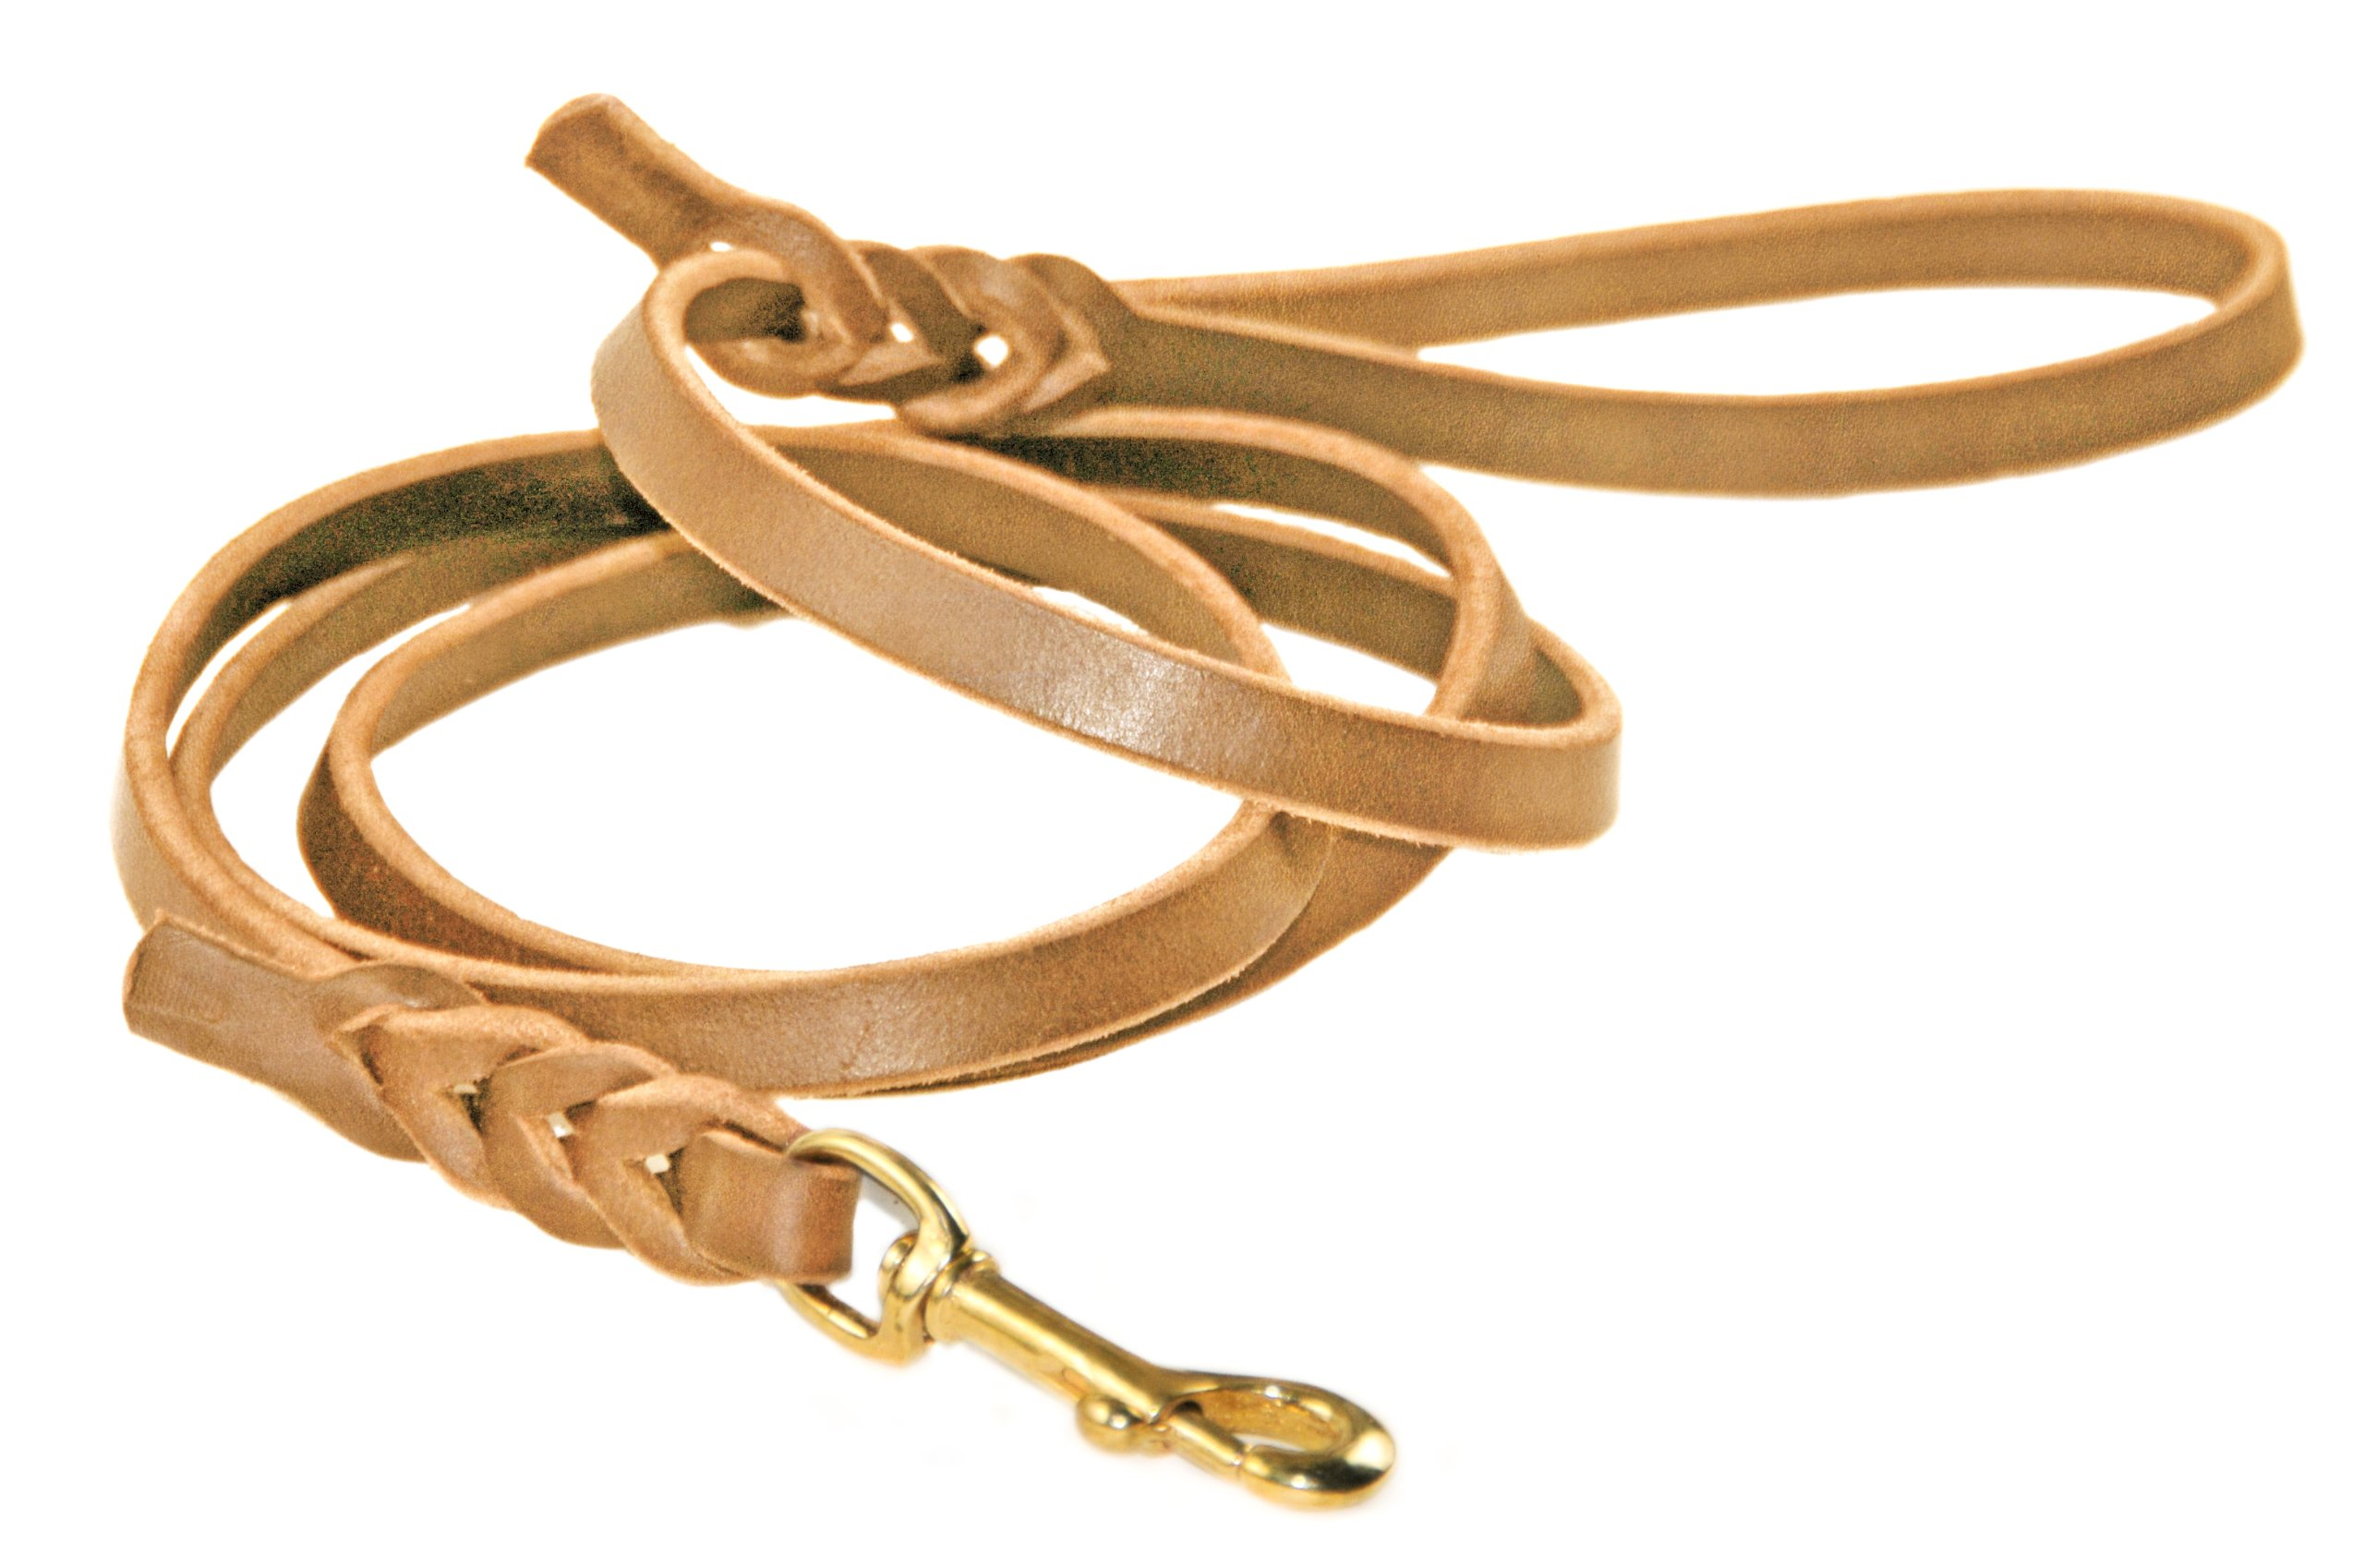 Dean & Tyler Nocturne Dog Leash with Hand Braided Leather and Solid Brass Hardware, 5-Feet by 1/2-Inch, Tan